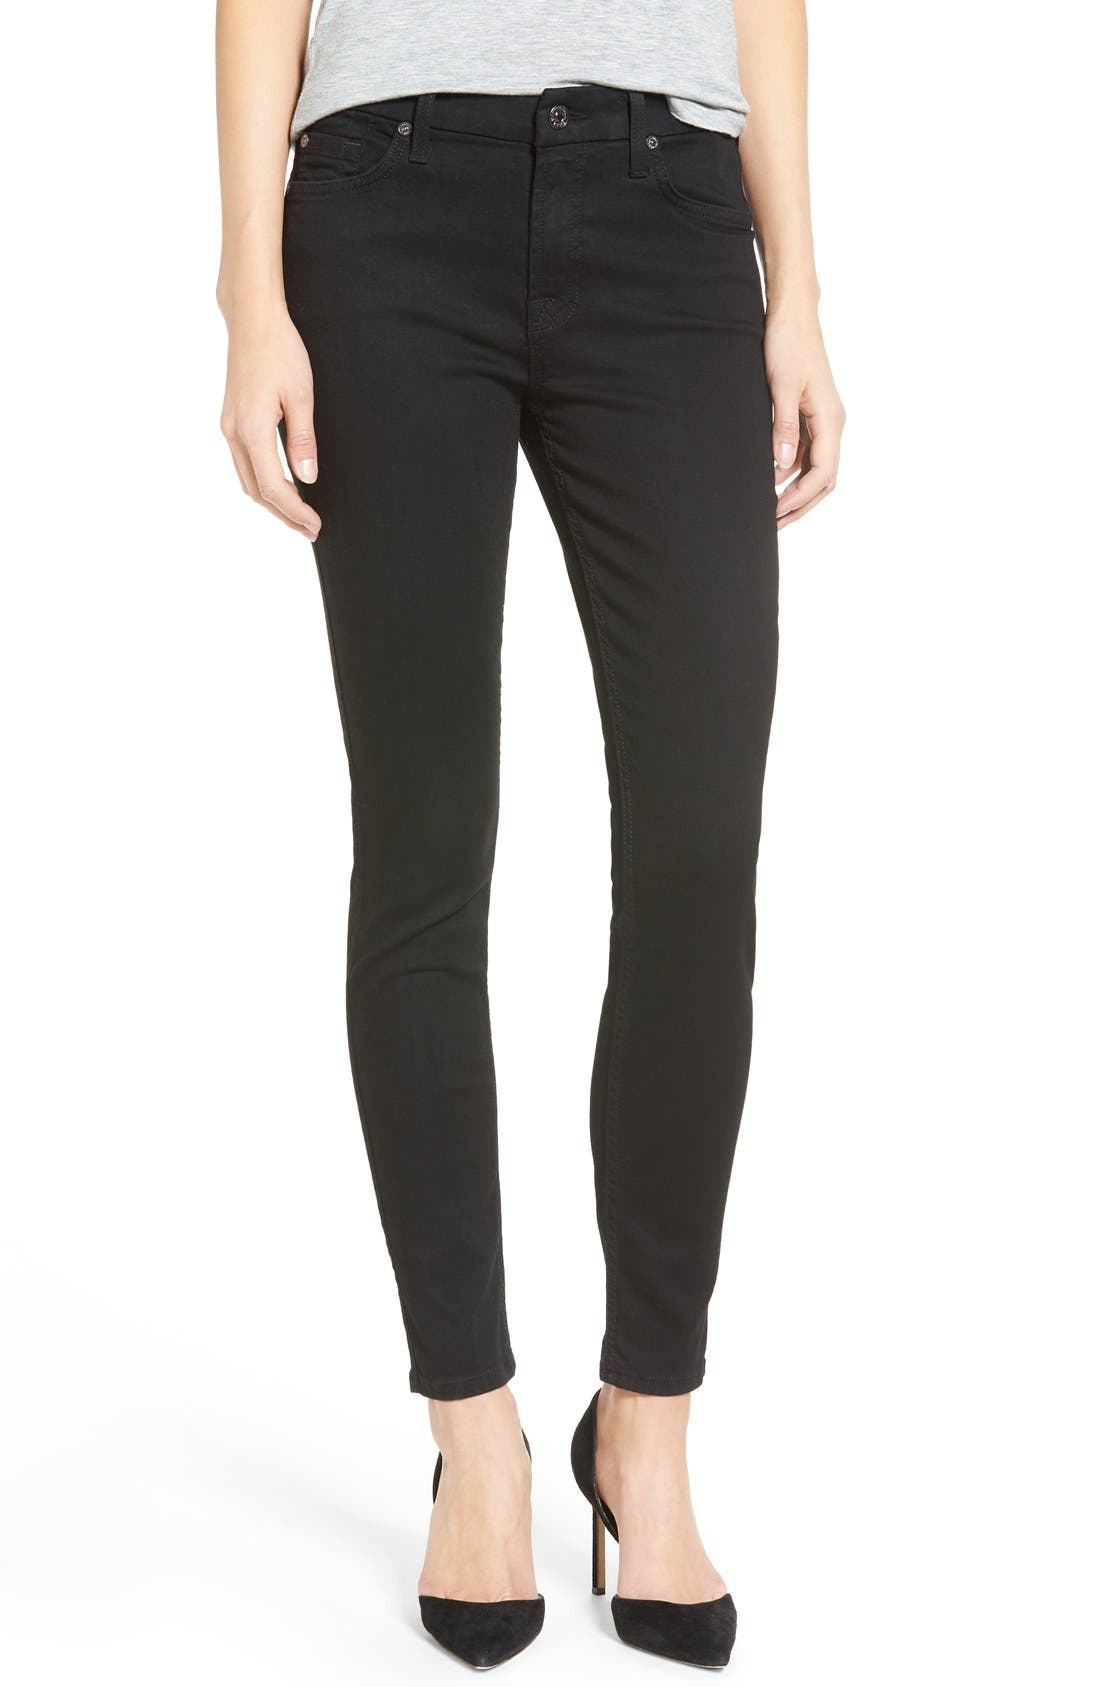 'b(air)' Ankle Skinny Jeans,                         Main,                         color, Black